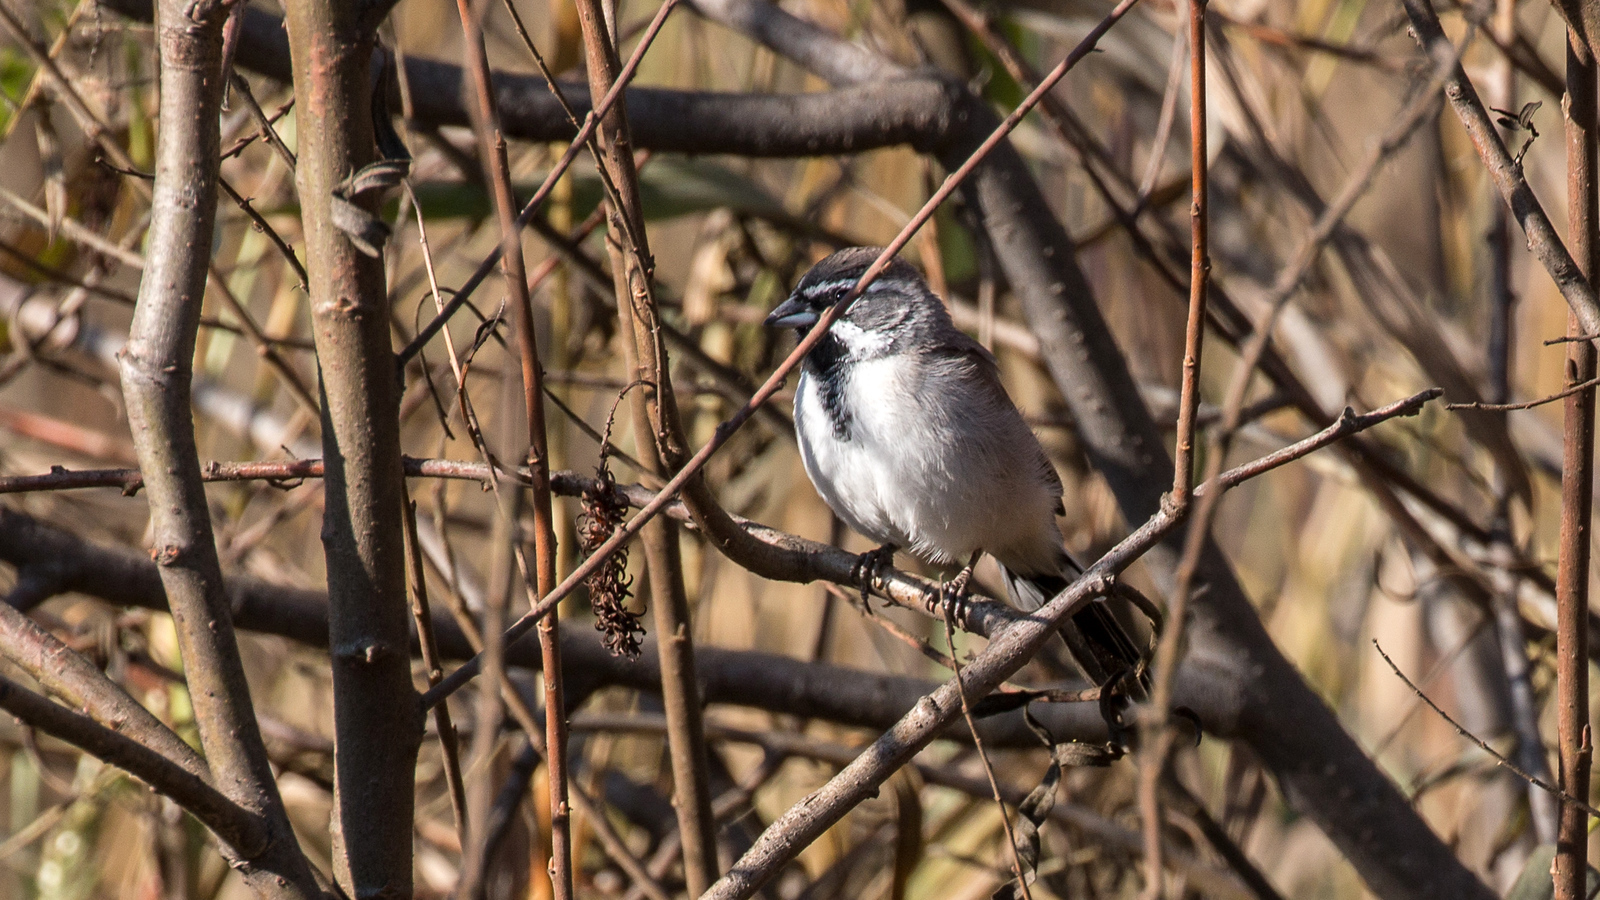 Photograph of a Black-throated Sparrow